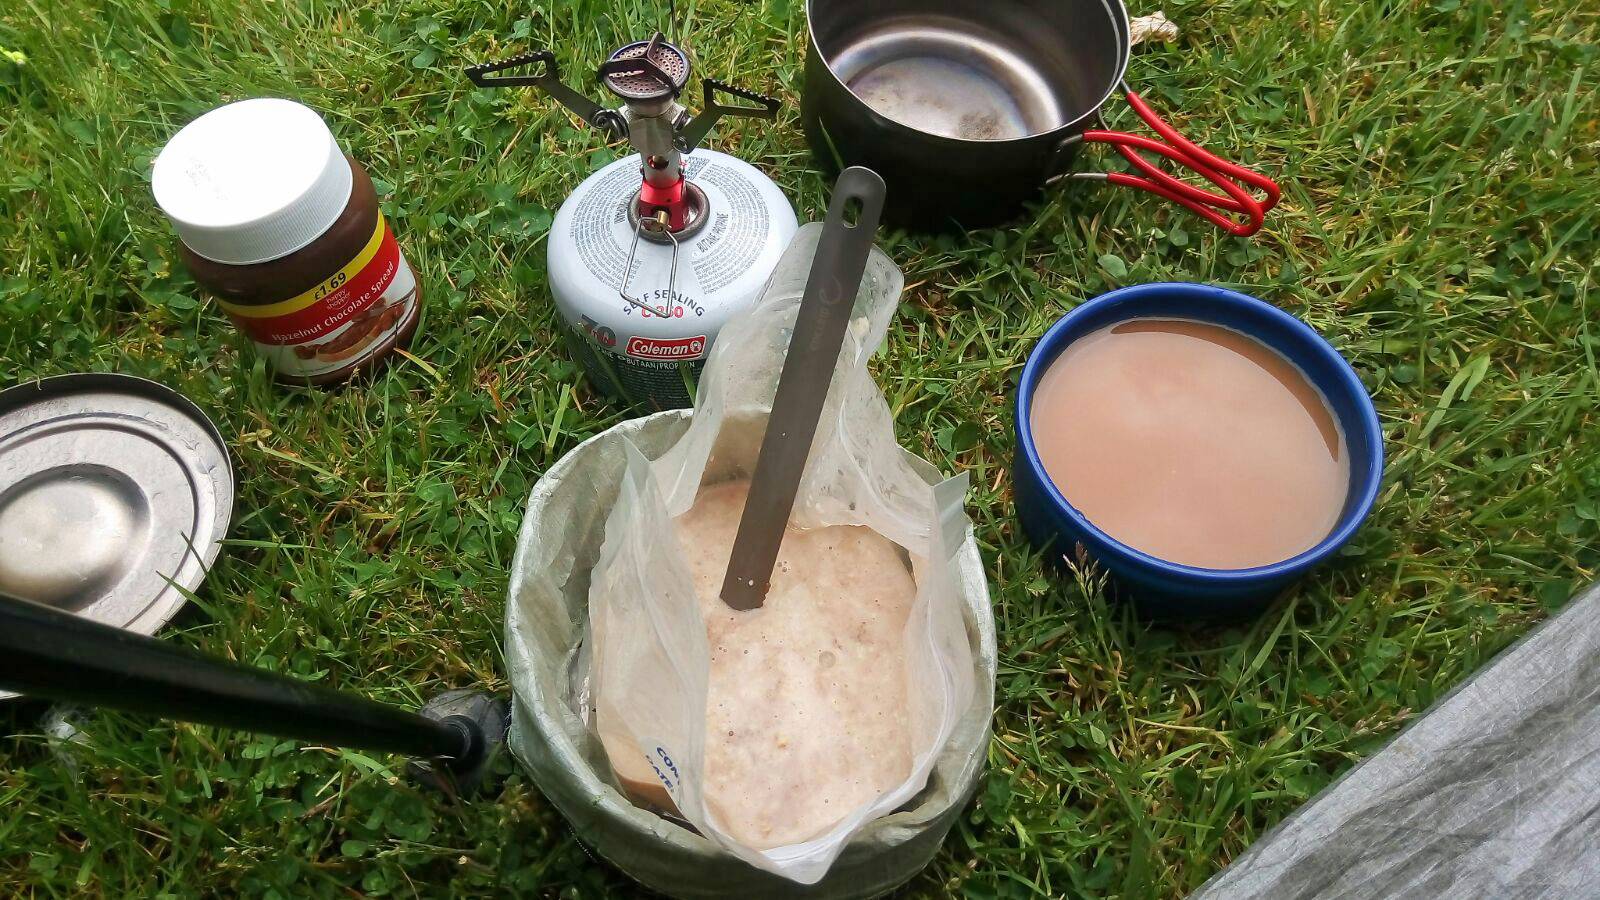 On a cold and miserable day, a brew and hot food lift morale. An efficient and reliable stove then proves to be vital. The MSR Pocket Rocket 2 is such a stove